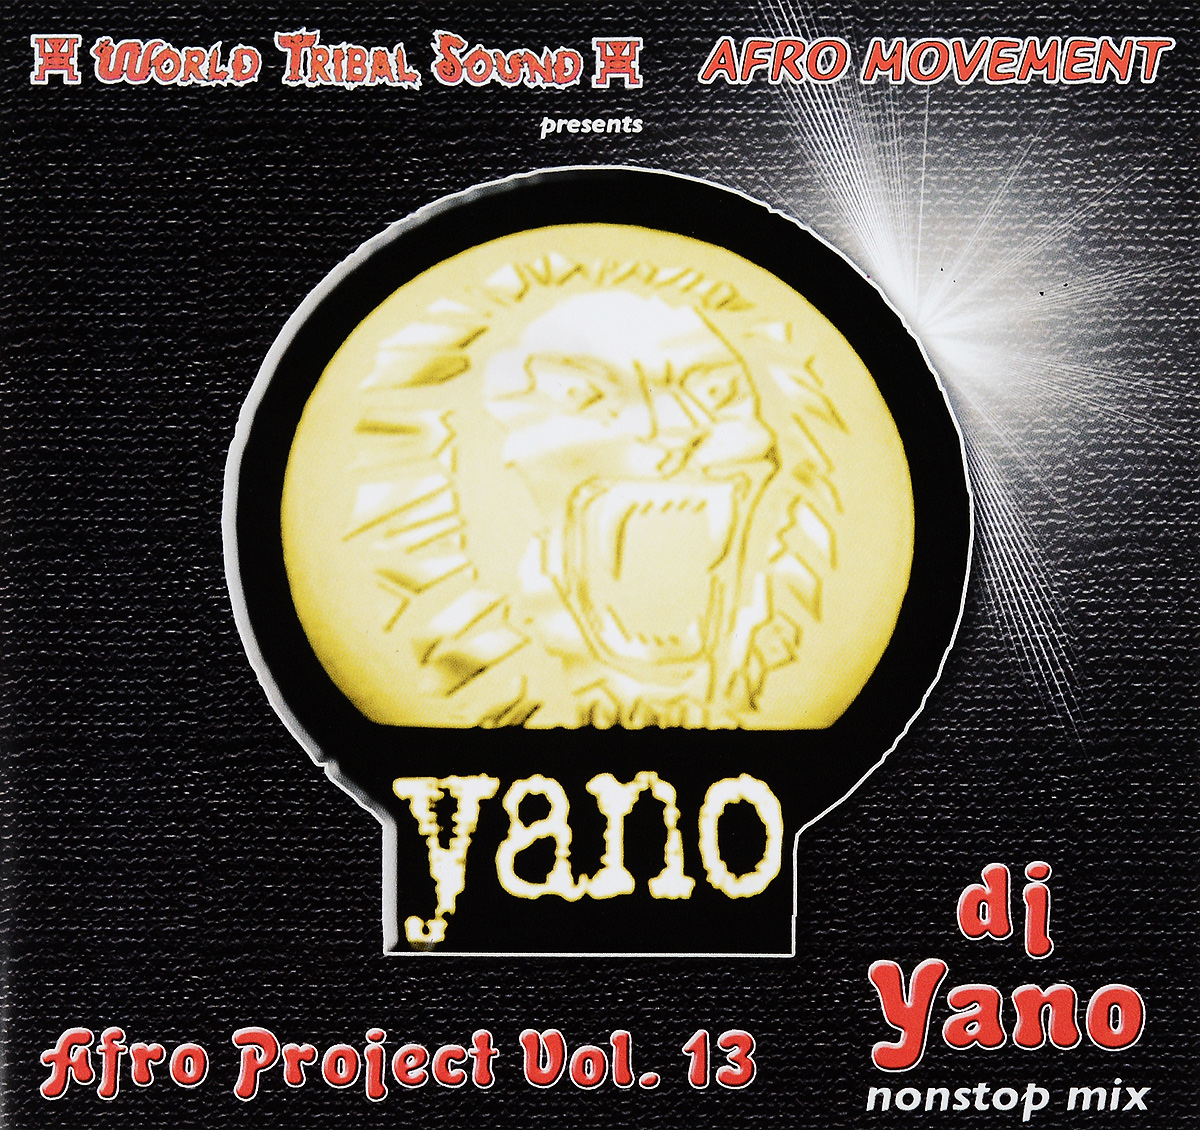 Dj Yano Dj Yano. Afro Project. Vol. 13 dj yano dj yano afro project vol 24 special limited edition cd dvd